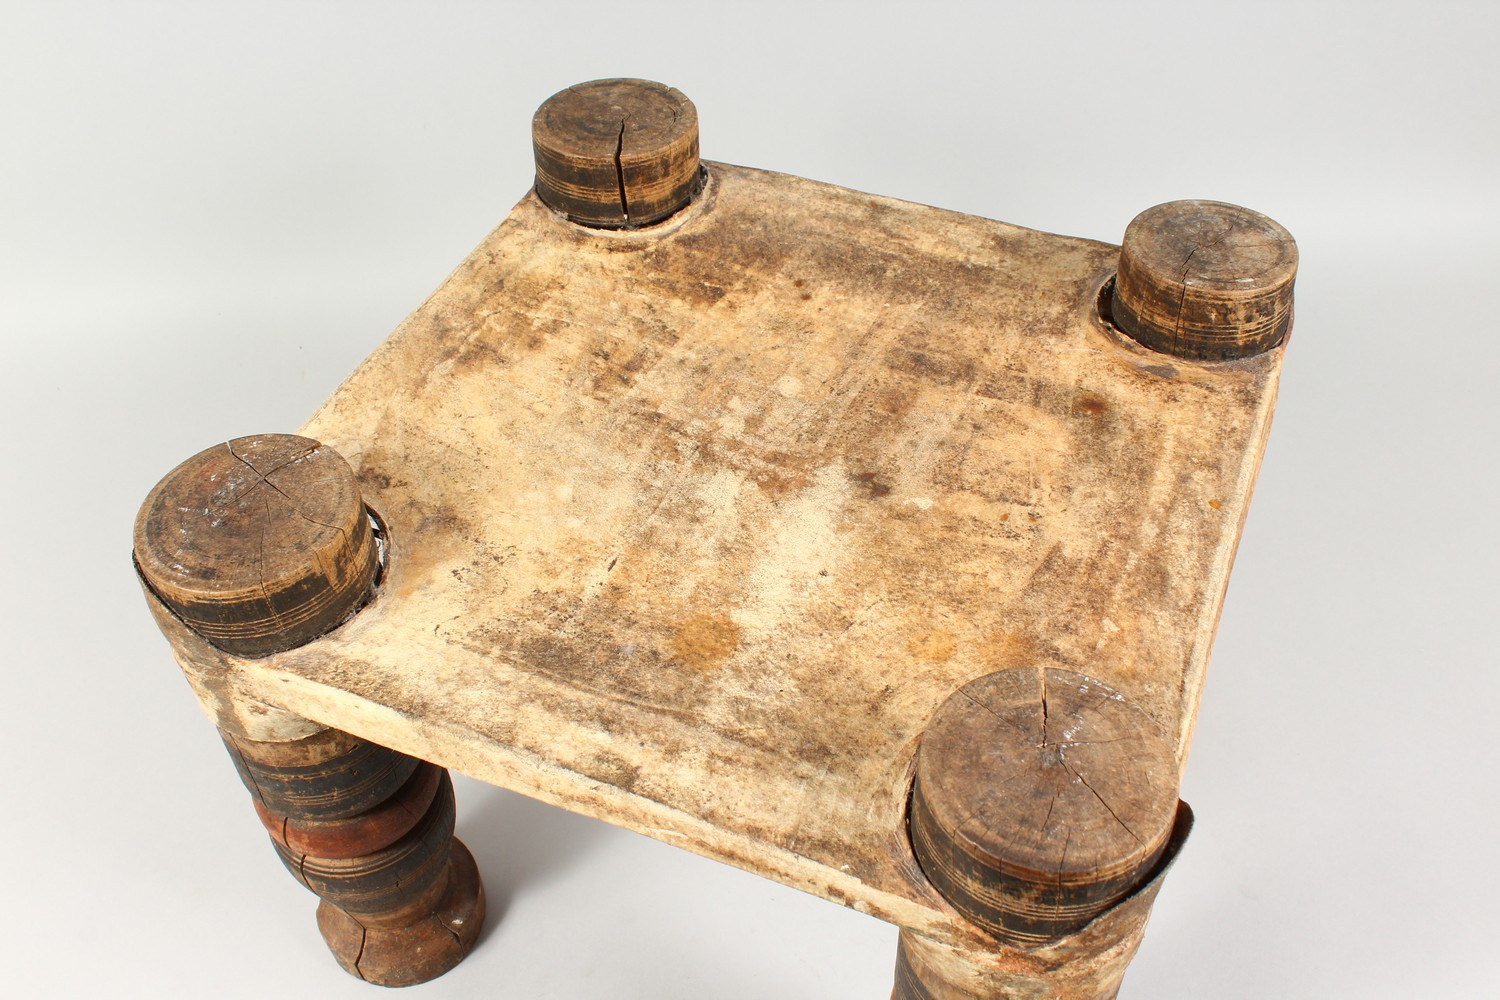 A NORTH AFRICAN PAINTED WOOD AND ANIMAL SKIN SQUARE SHAPED STOOL. 15ins wide x 11.5ins high. - Image 4 of 8